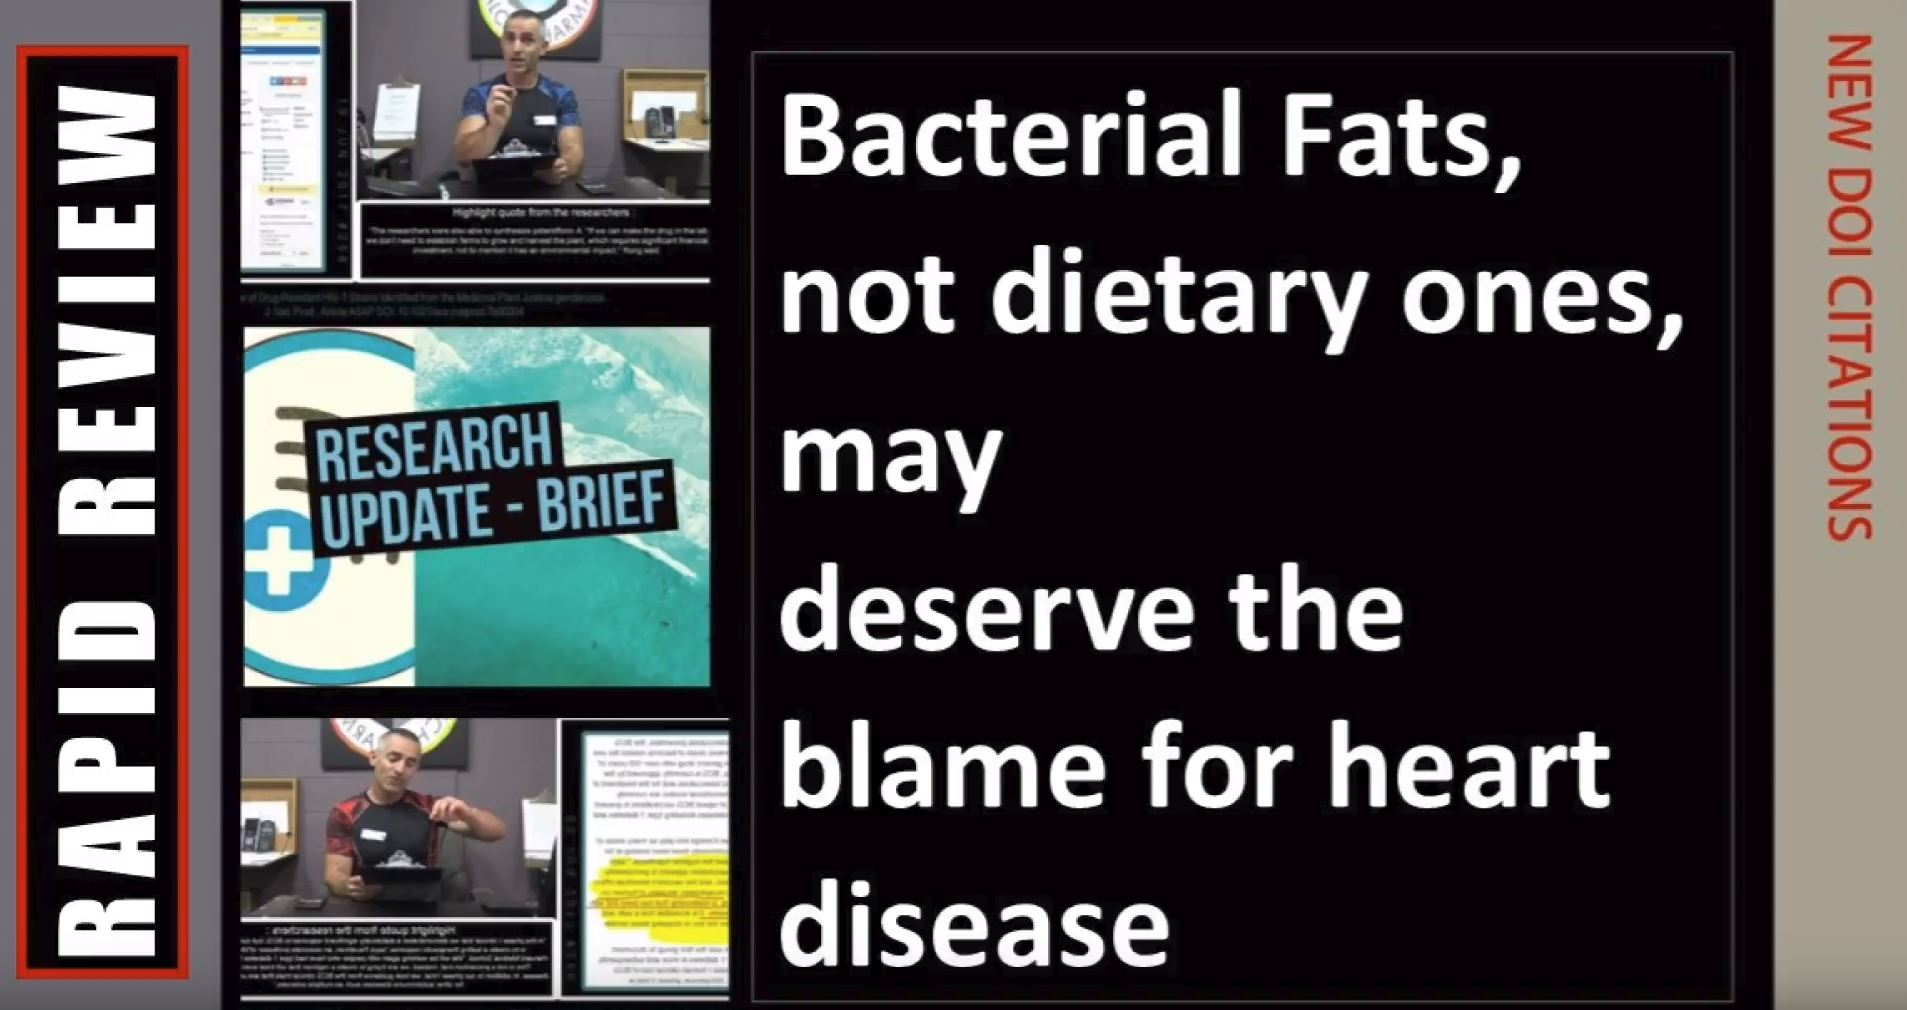 Bacterial Fats, not dietary ones, may deserve the blame for heart disease